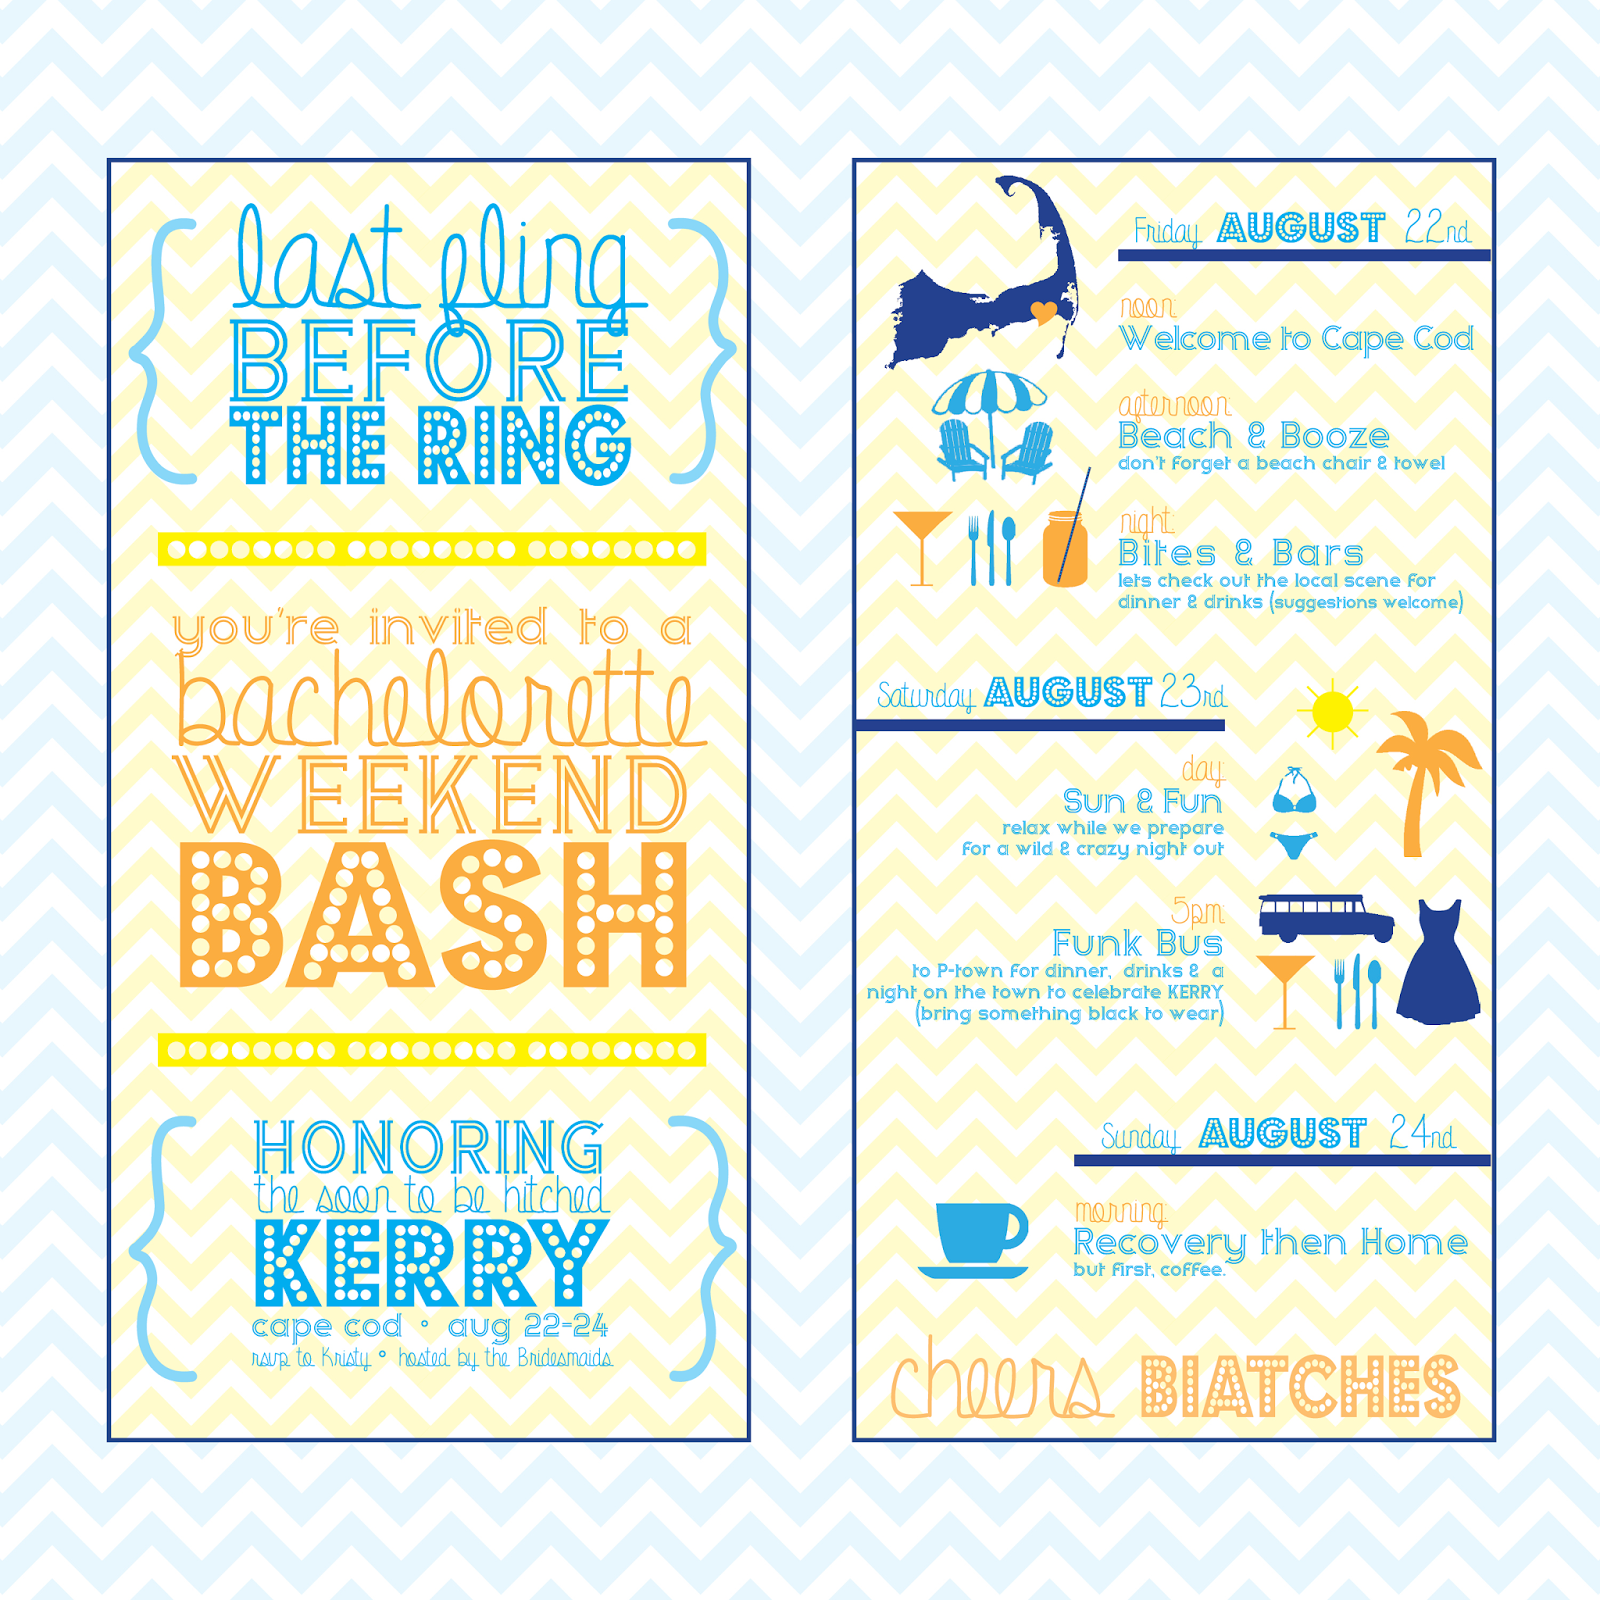 bachelorette party invitations, bachelorette party itinerary, bachelorette weekend bash, invitations, custom bachelorette invitations, last fling before the ring, cheers biatch